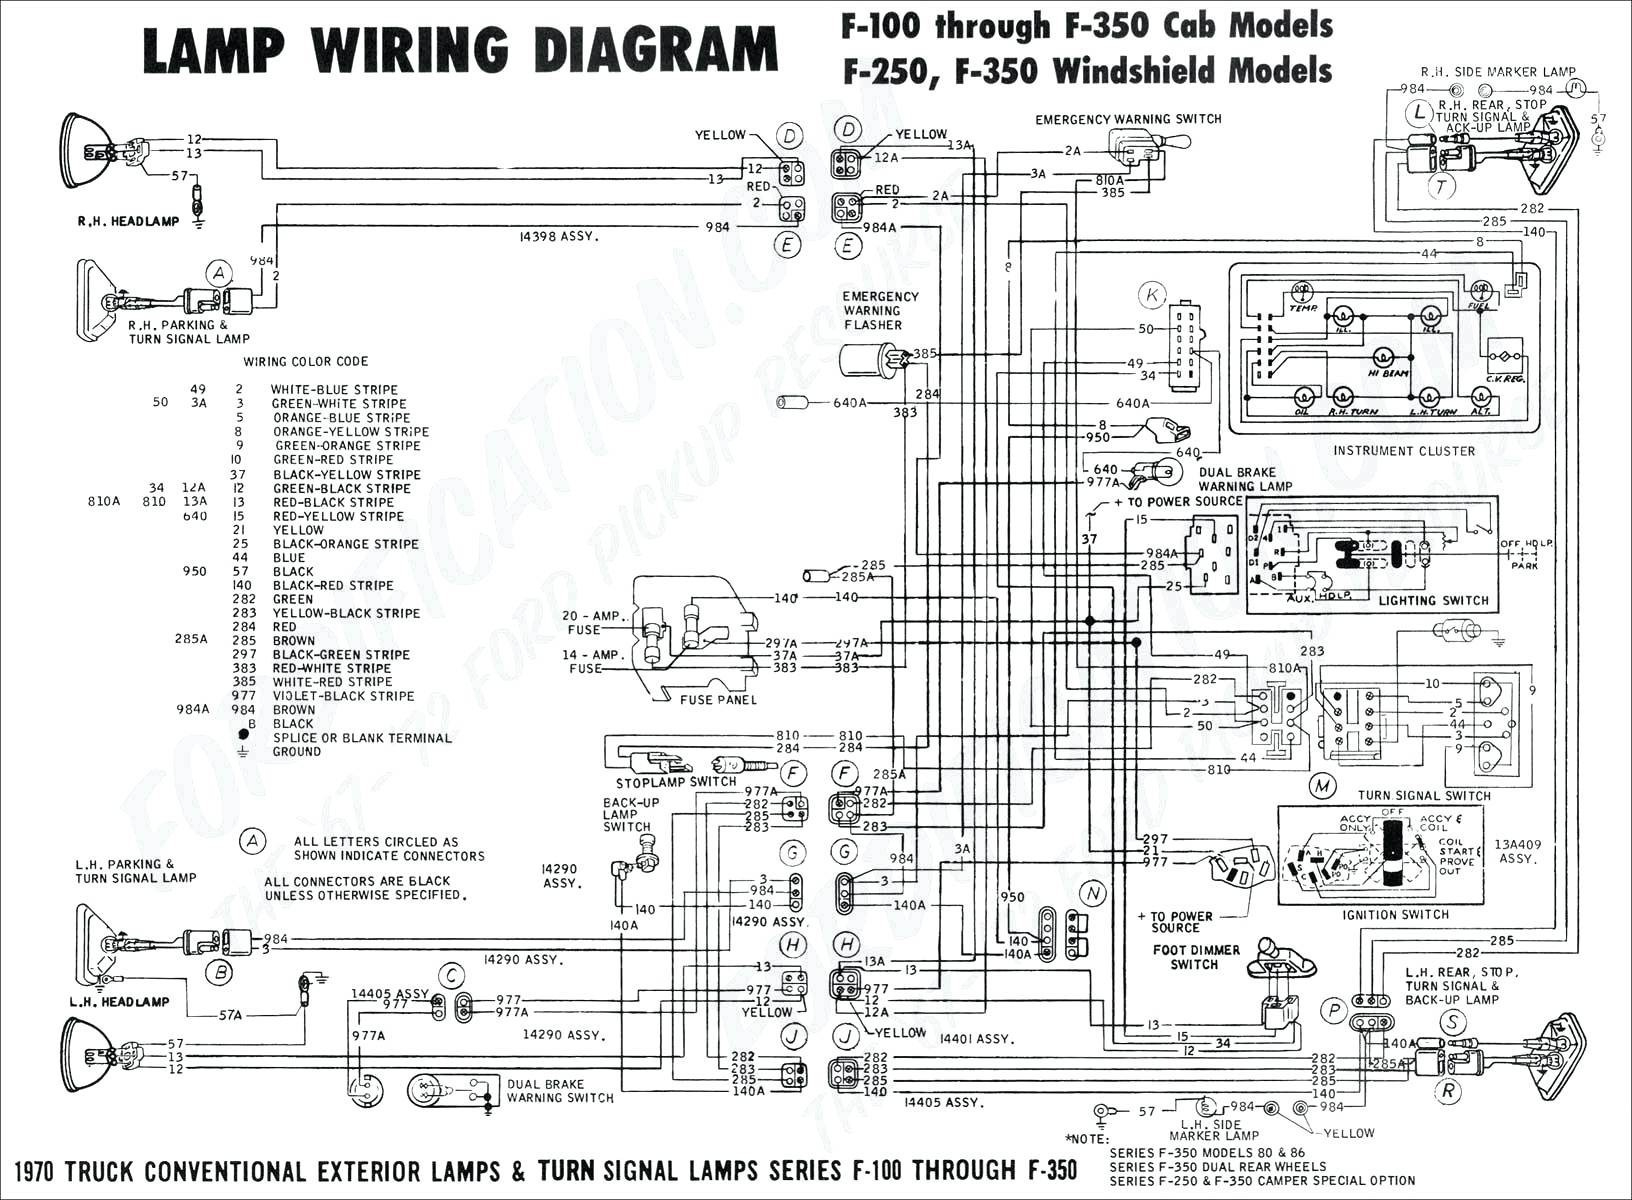 Electric Fuel Pump Relay Wiring Diagram